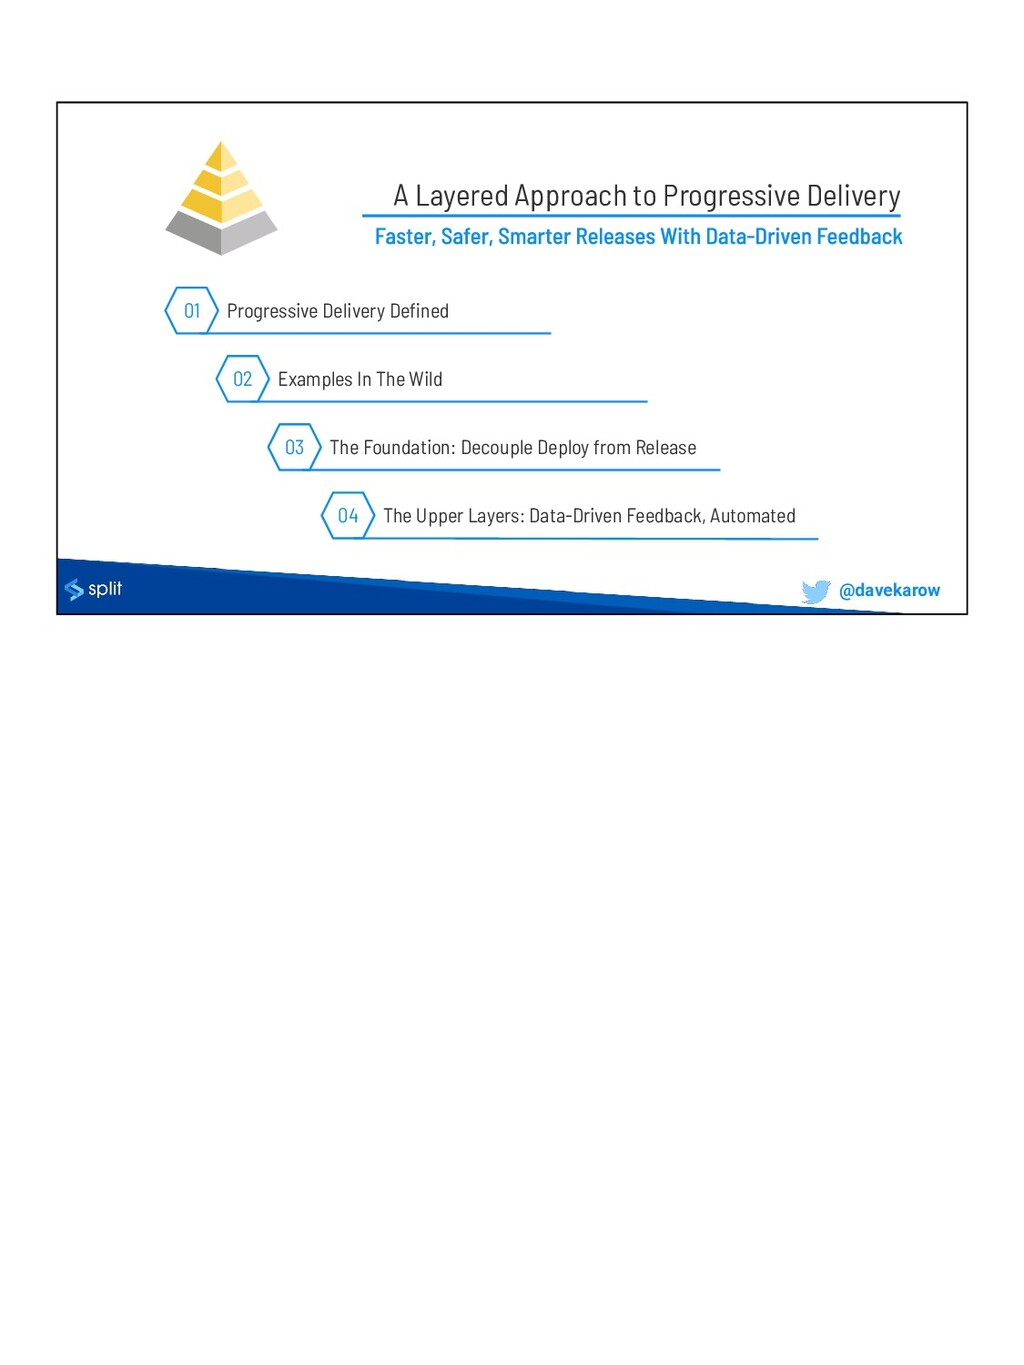 A Layered Approach to Progressive Delivery Prog...